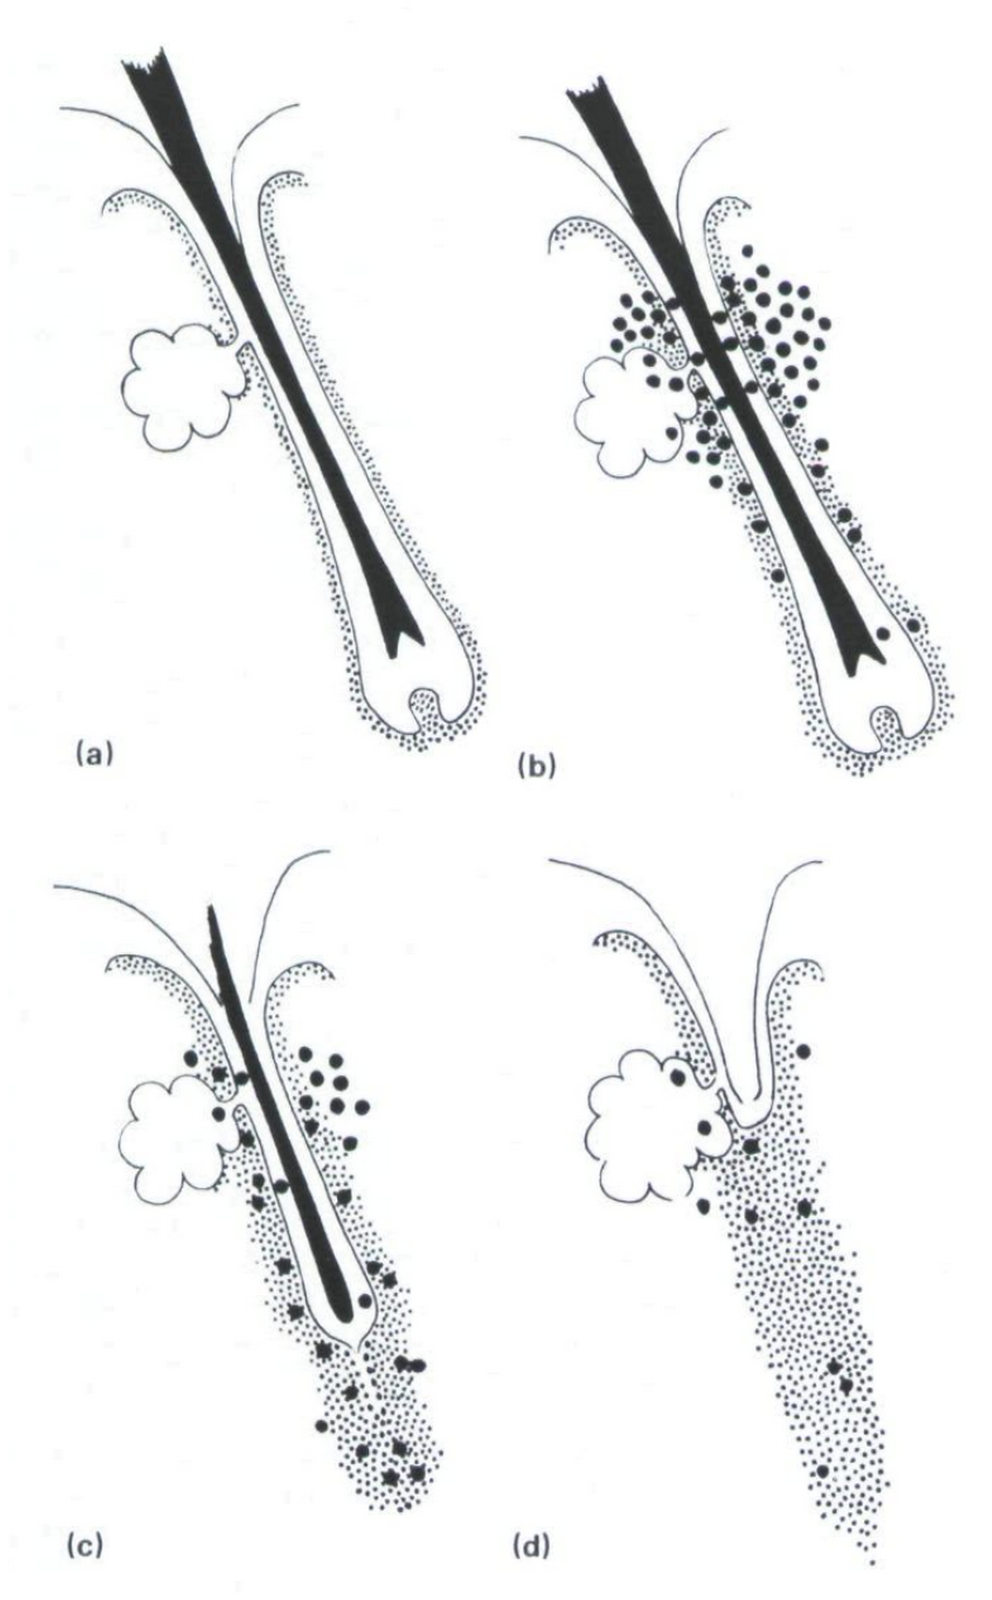 (A) Normal anagen follicles. (B) infiltrated by activated T cells. (C) Persistence of T cells within the sheath is associated with mast cell degranulation and induction of collagen synthesis by sheath fibroblasts.